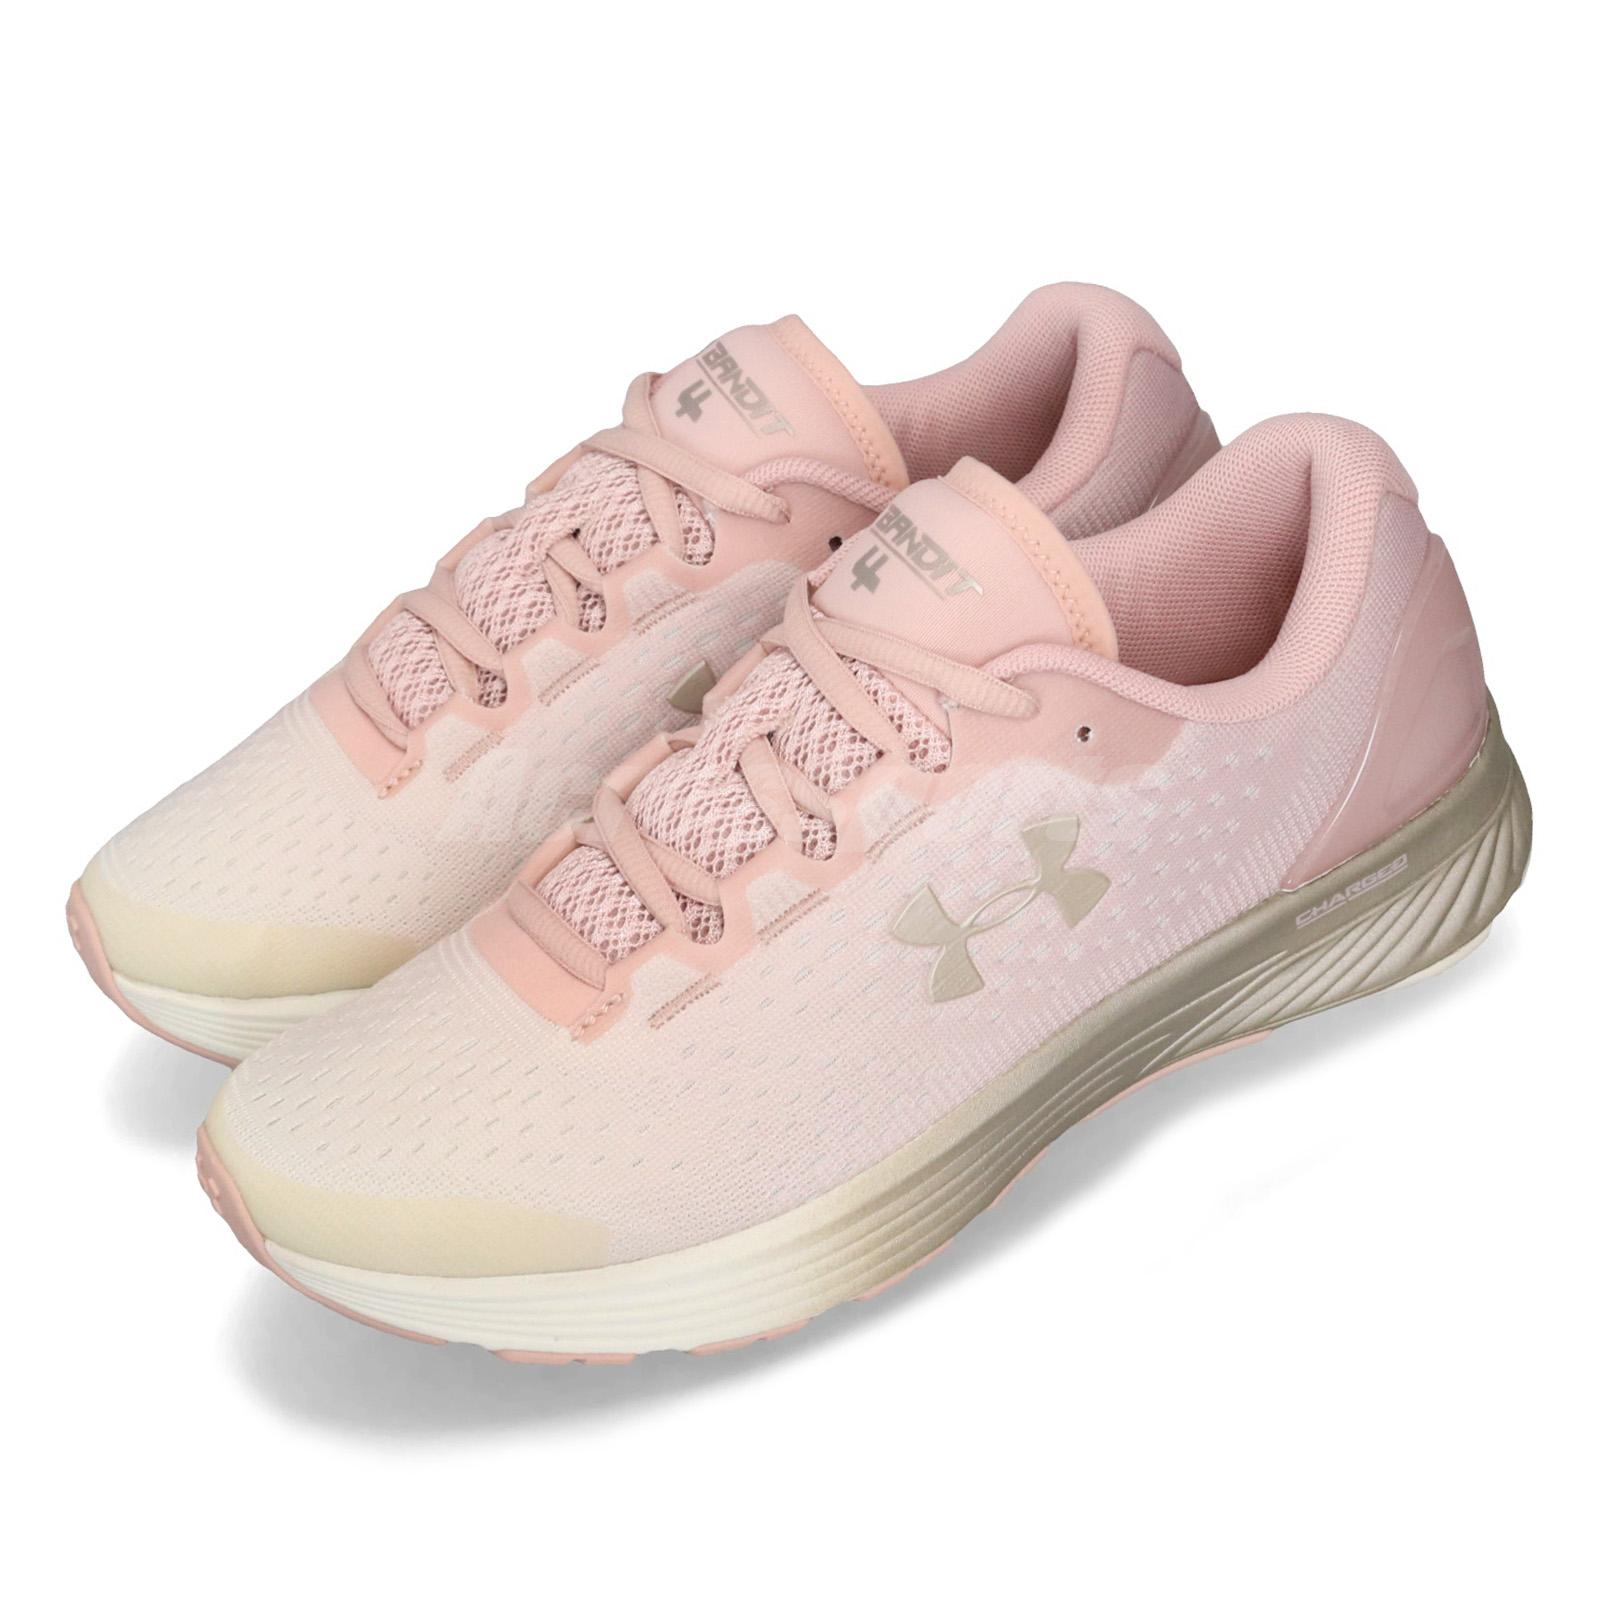 finest selection 9d889 dce1c Details about Under Armour UA Charged Bandit 4 Pink Grey Womens Running  Shoes 3020357-603